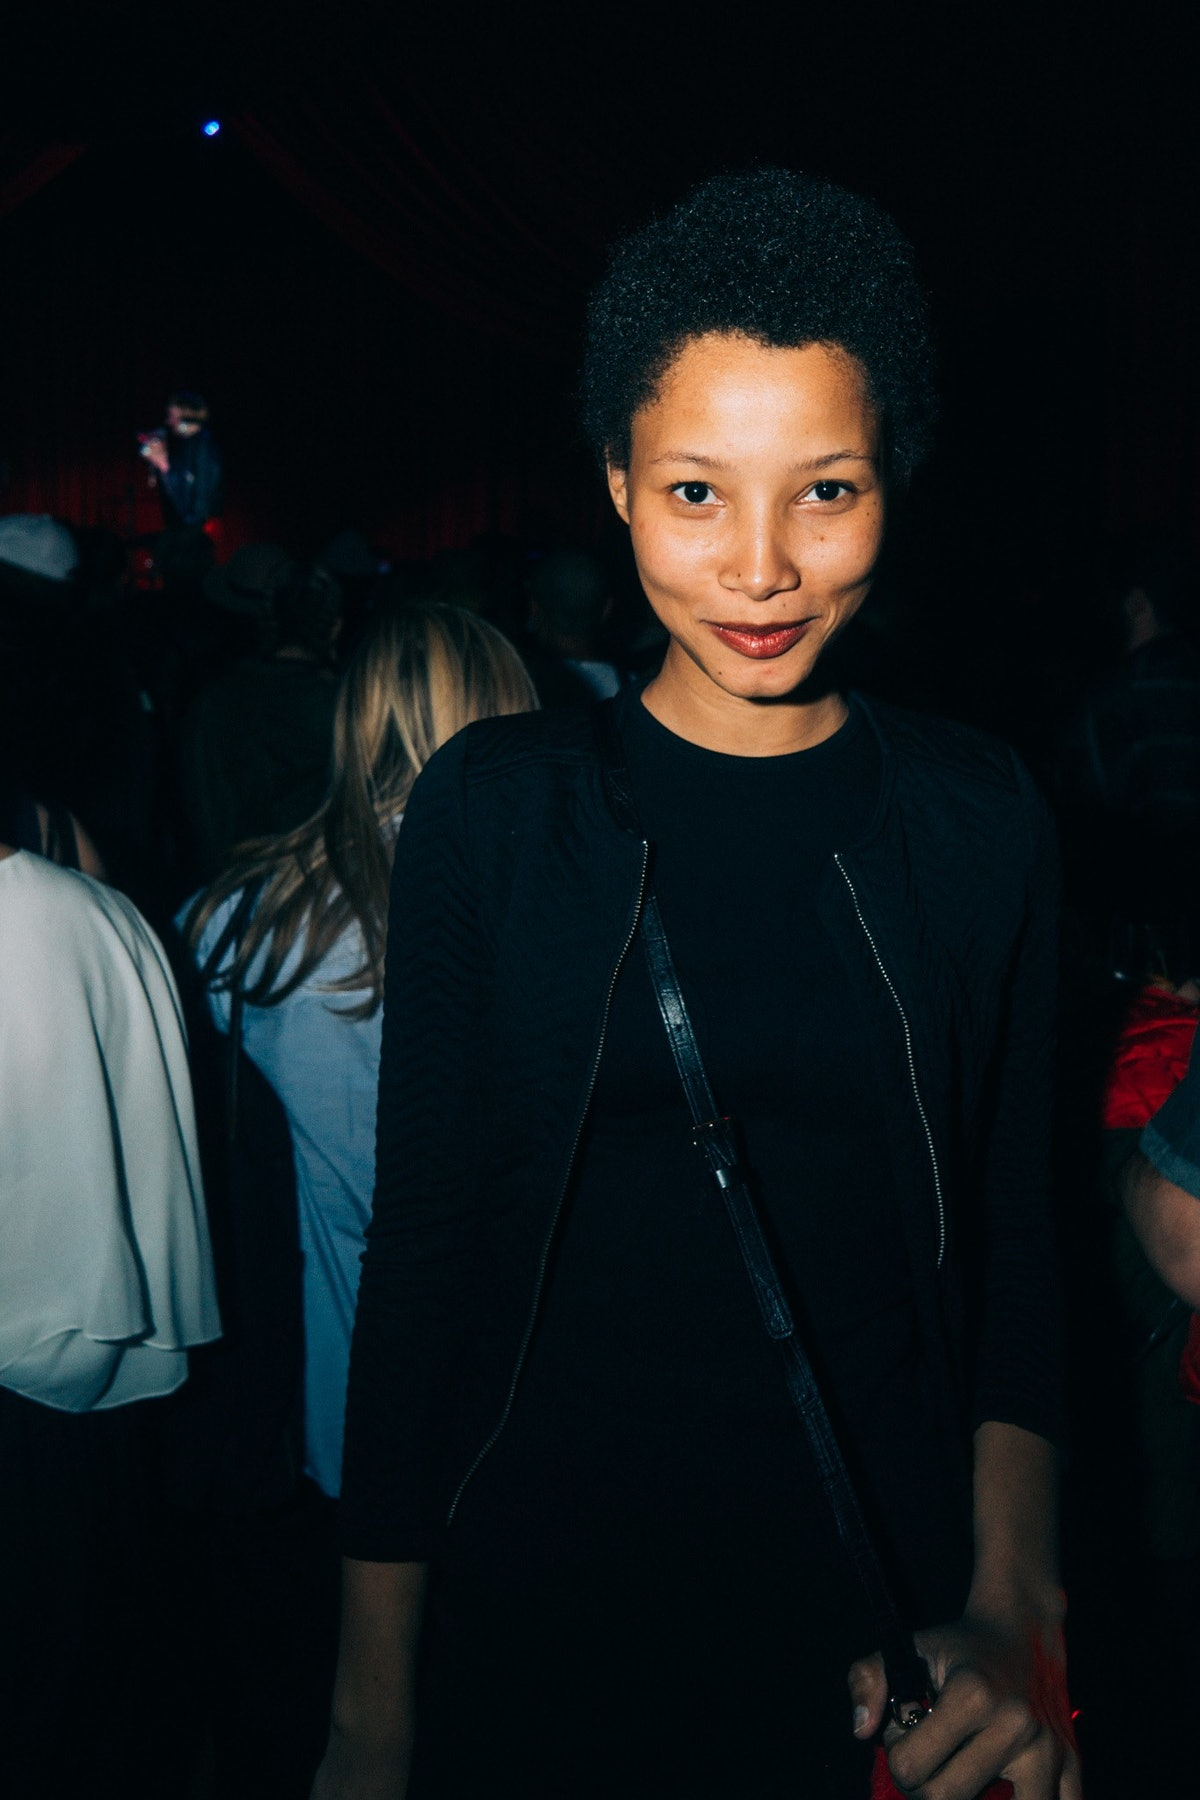 Marc Jacobs And Safilo Eyewear Collection Party-09262@2x